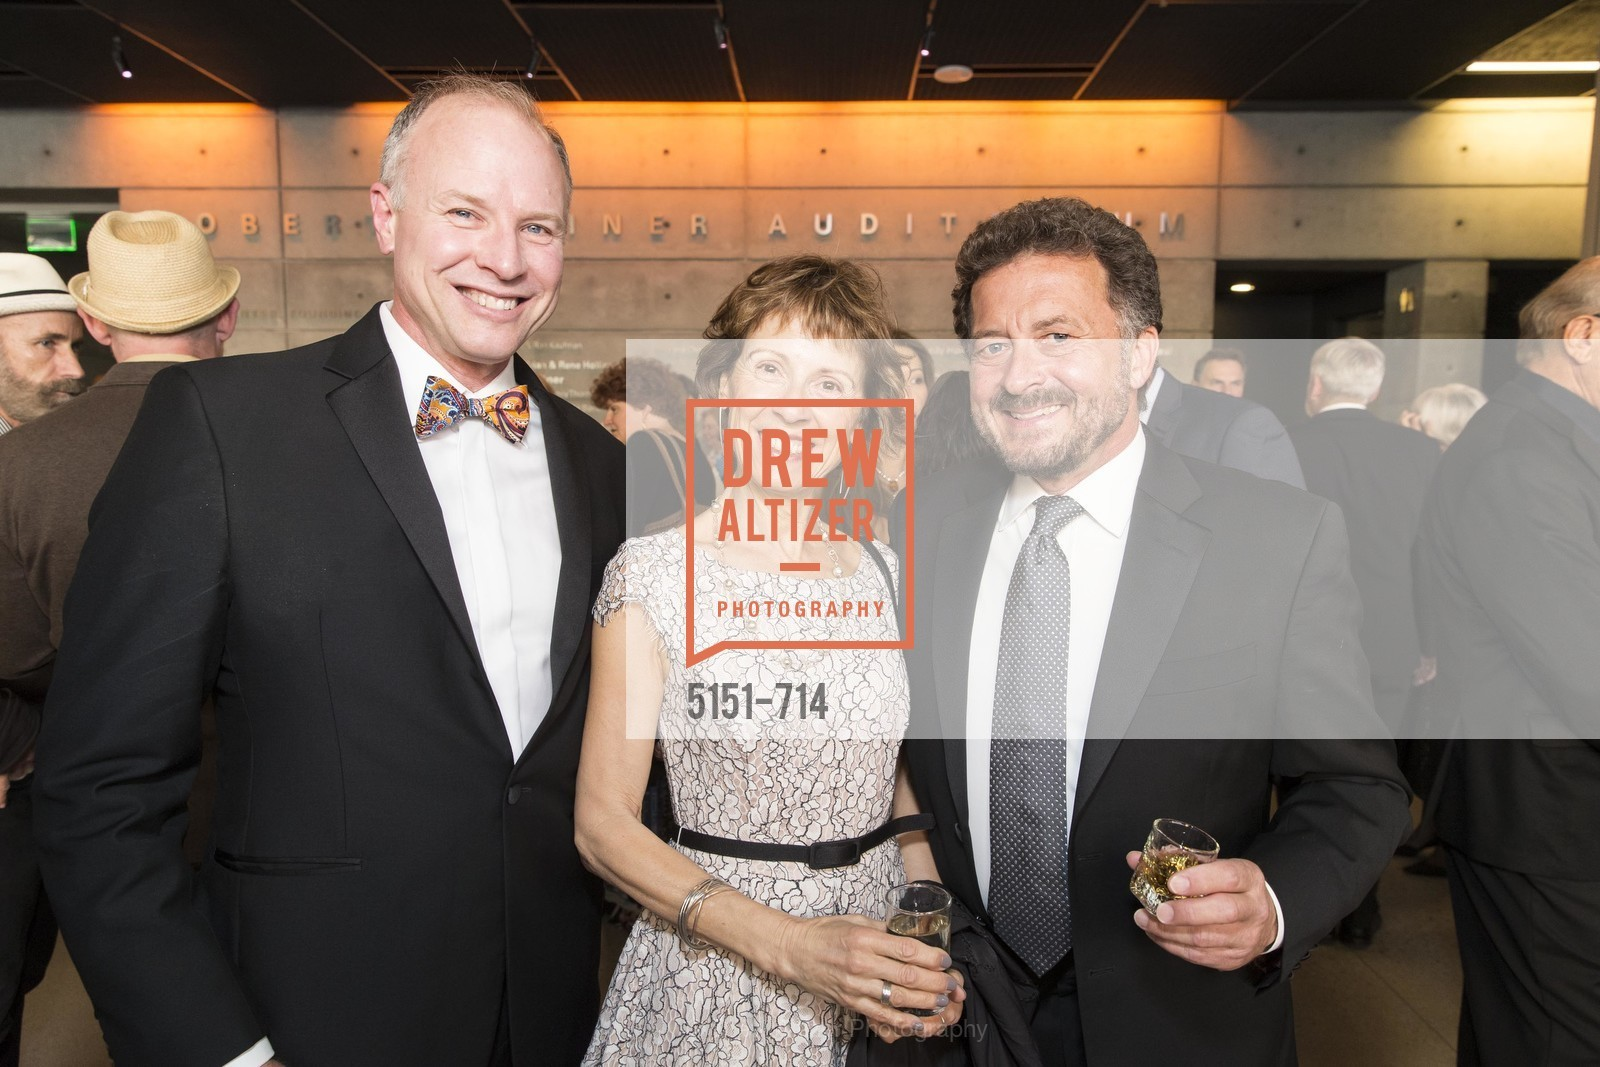 Don Derheim, Patricia Helleboid, Rex Cardinale, SFJAZZ Gala 2015 Honors Joni Mitchell with Lifetime Achievement Award, US, May 9th, 2015,Drew Altizer, Drew Altizer Photography, full-service agency, private events, San Francisco photographer, photographer california